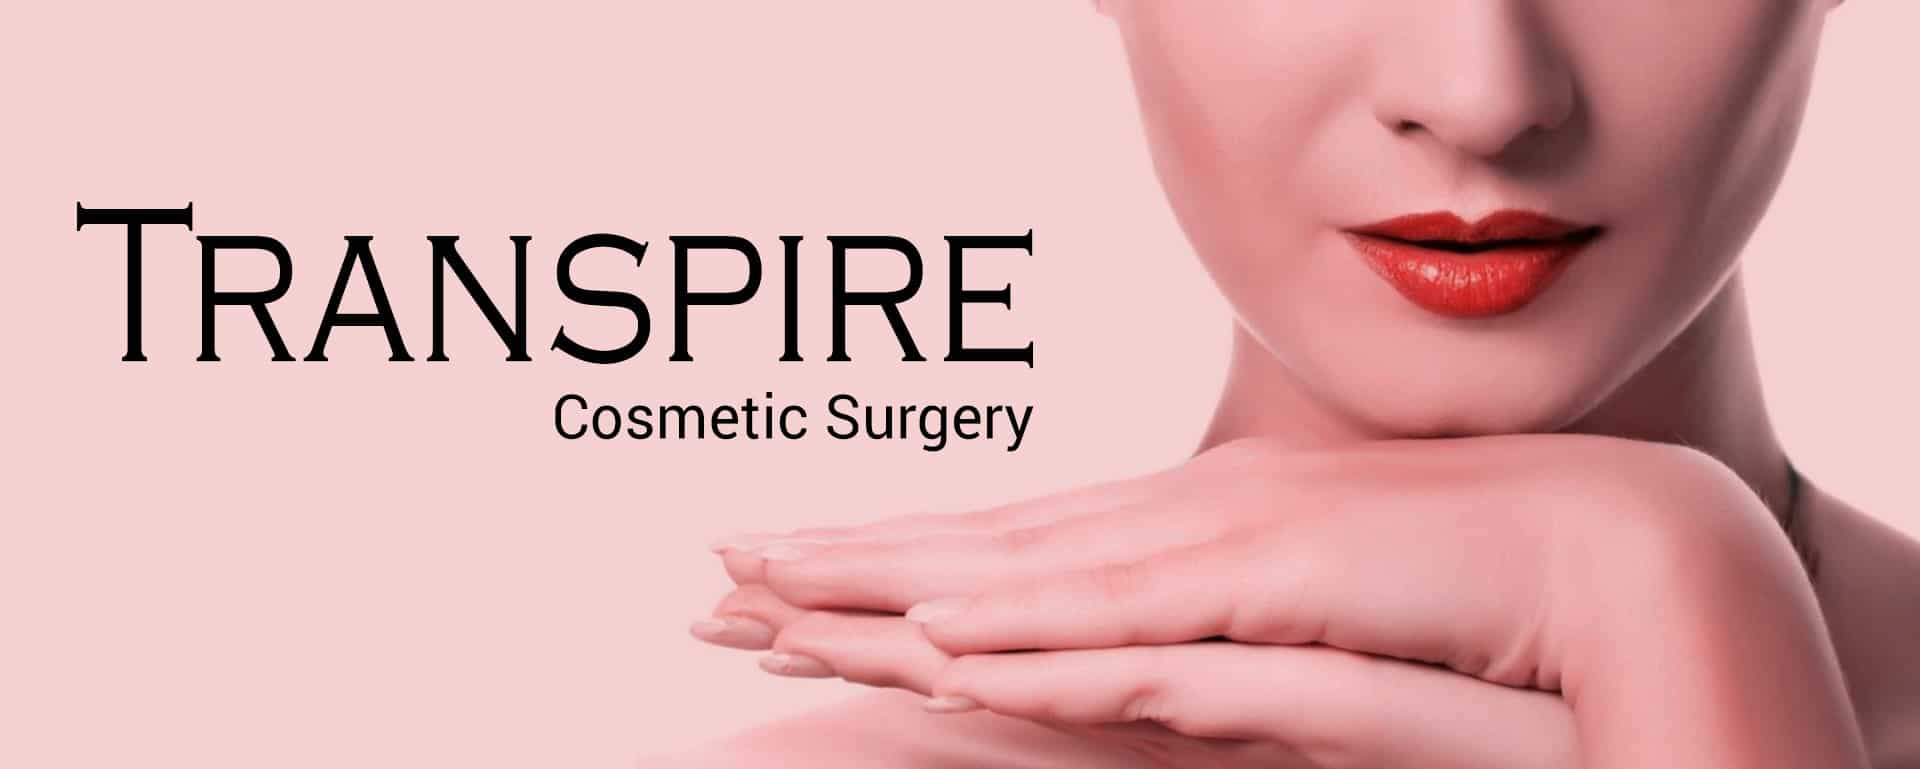 transpire cosmetic surgery